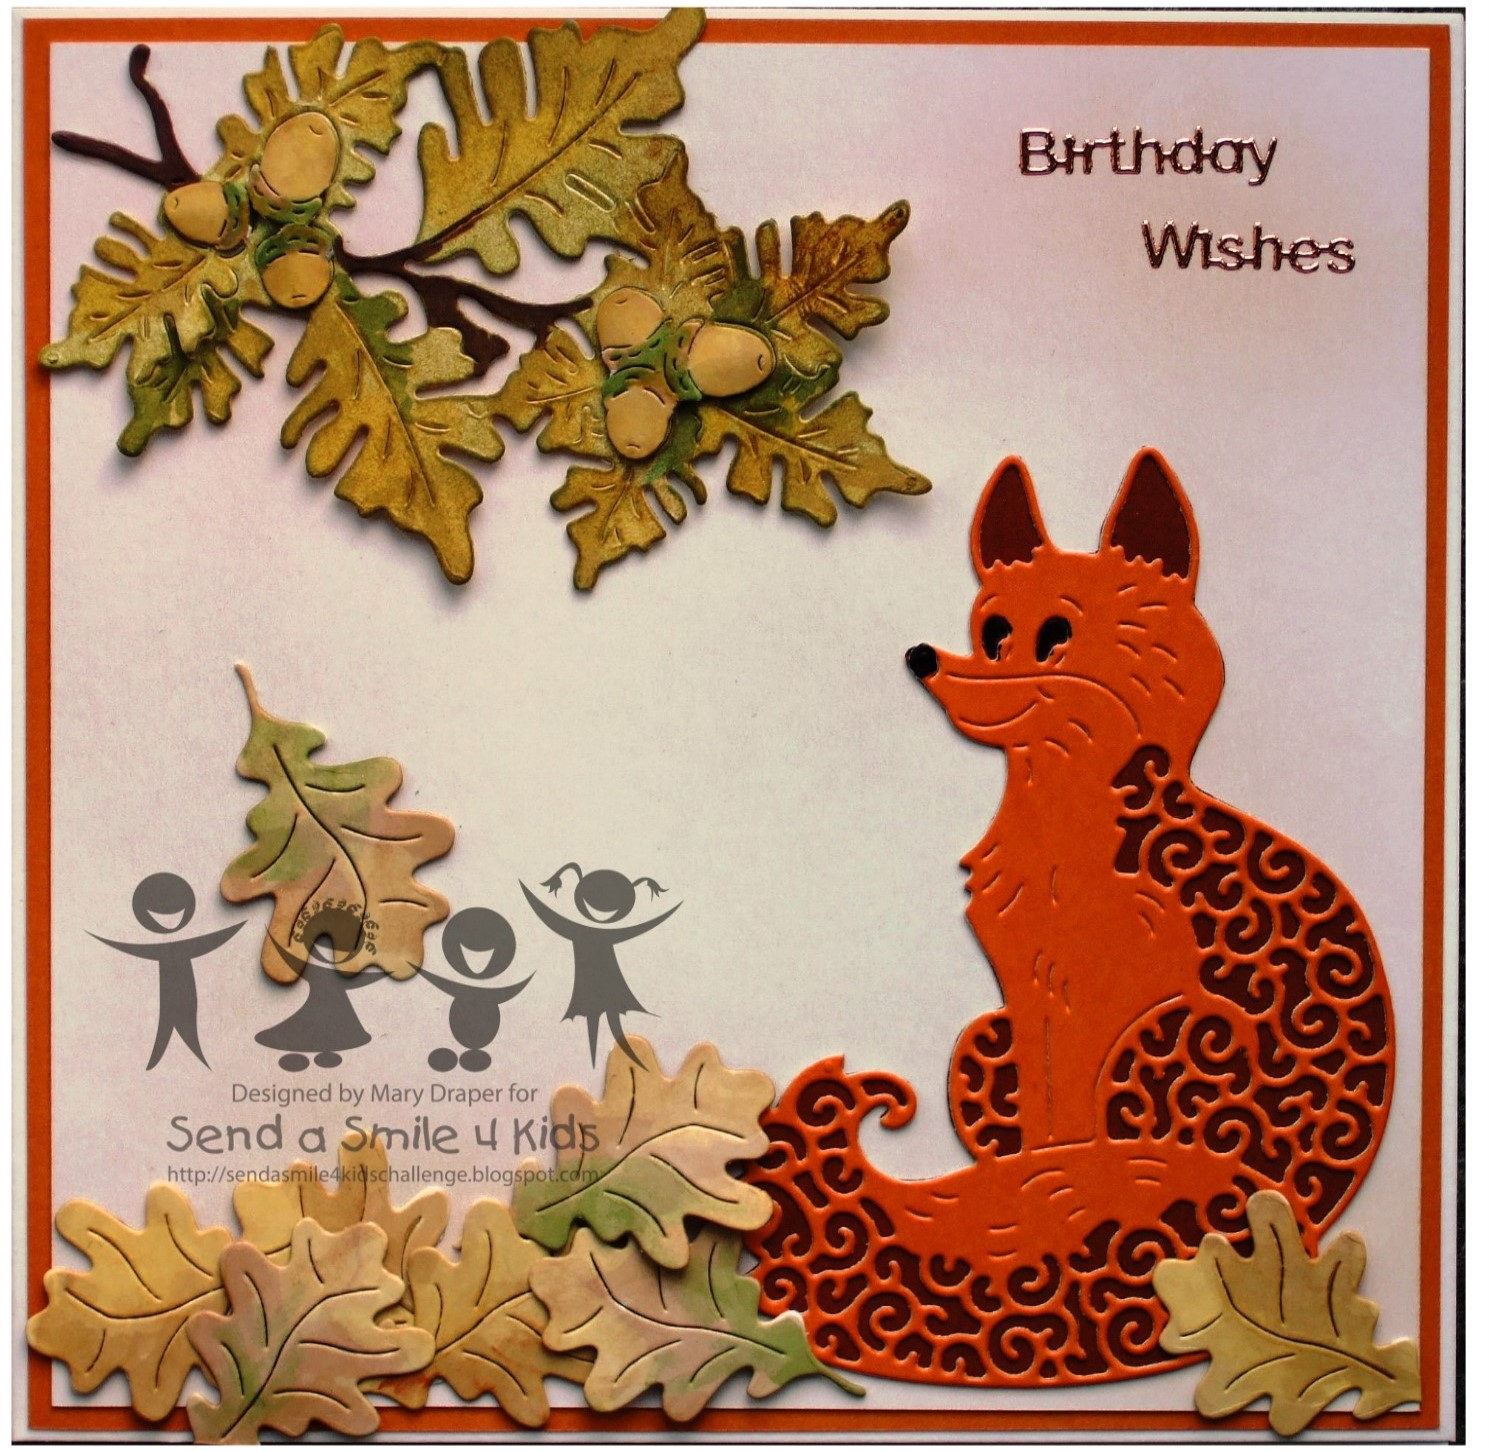 Send A Smile 4 Kids Challenge Blog Thankful Or Fall Cards 4 Kids Or